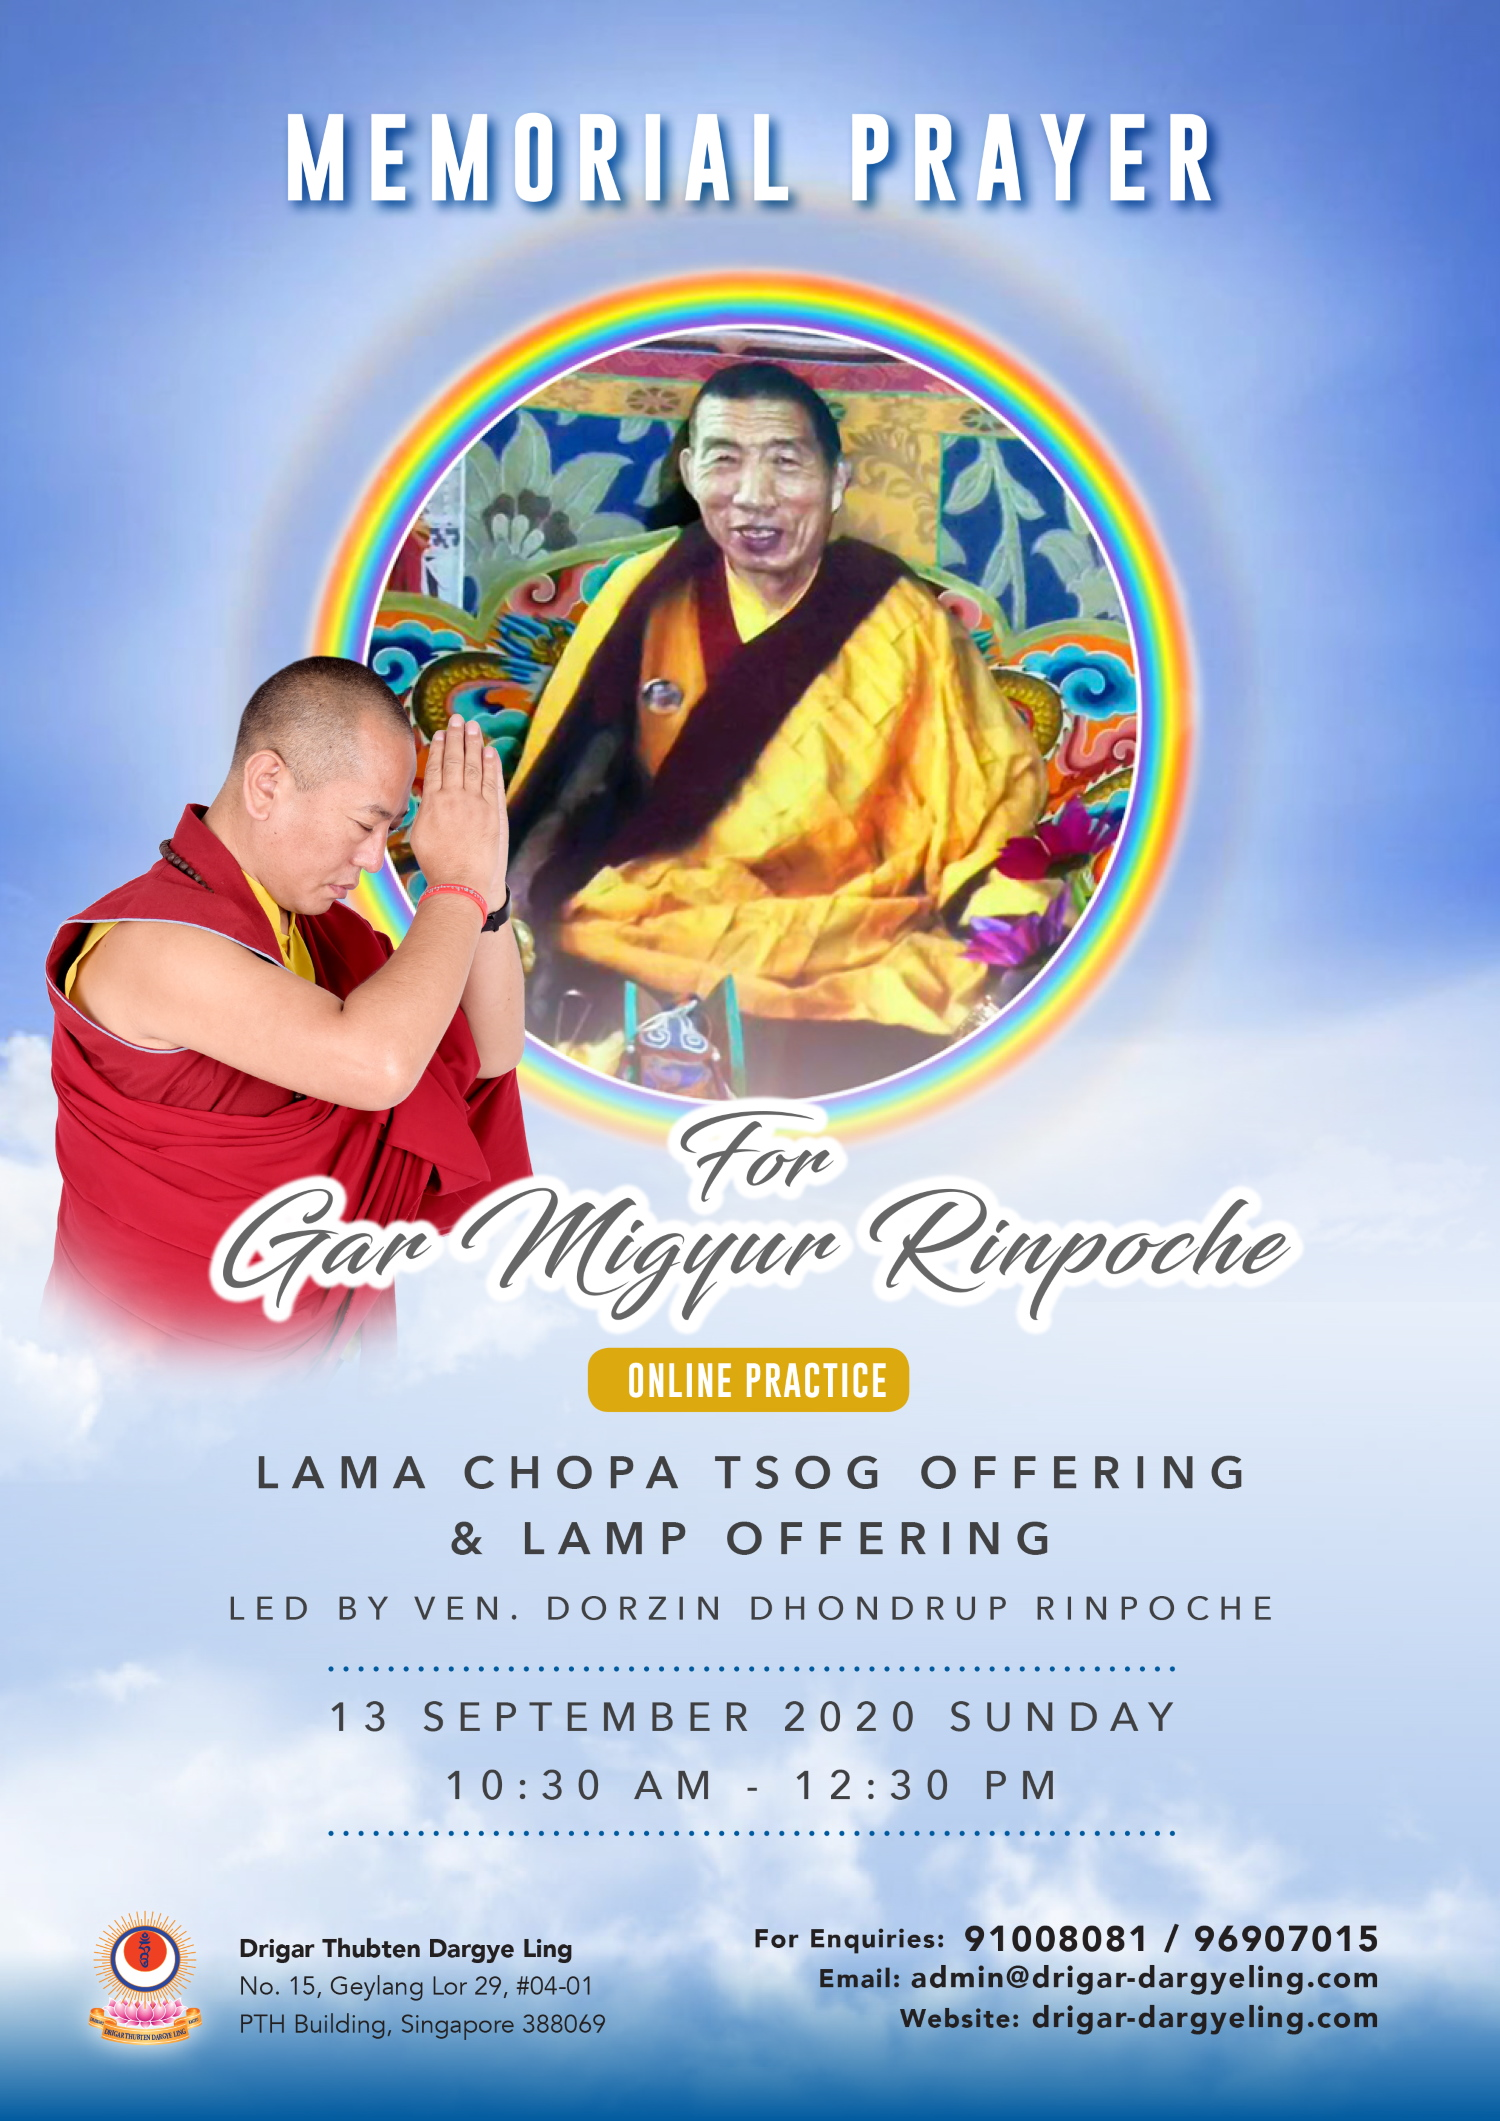 gar-mingyur-rinpoche-memorial-prayer-poster-2020